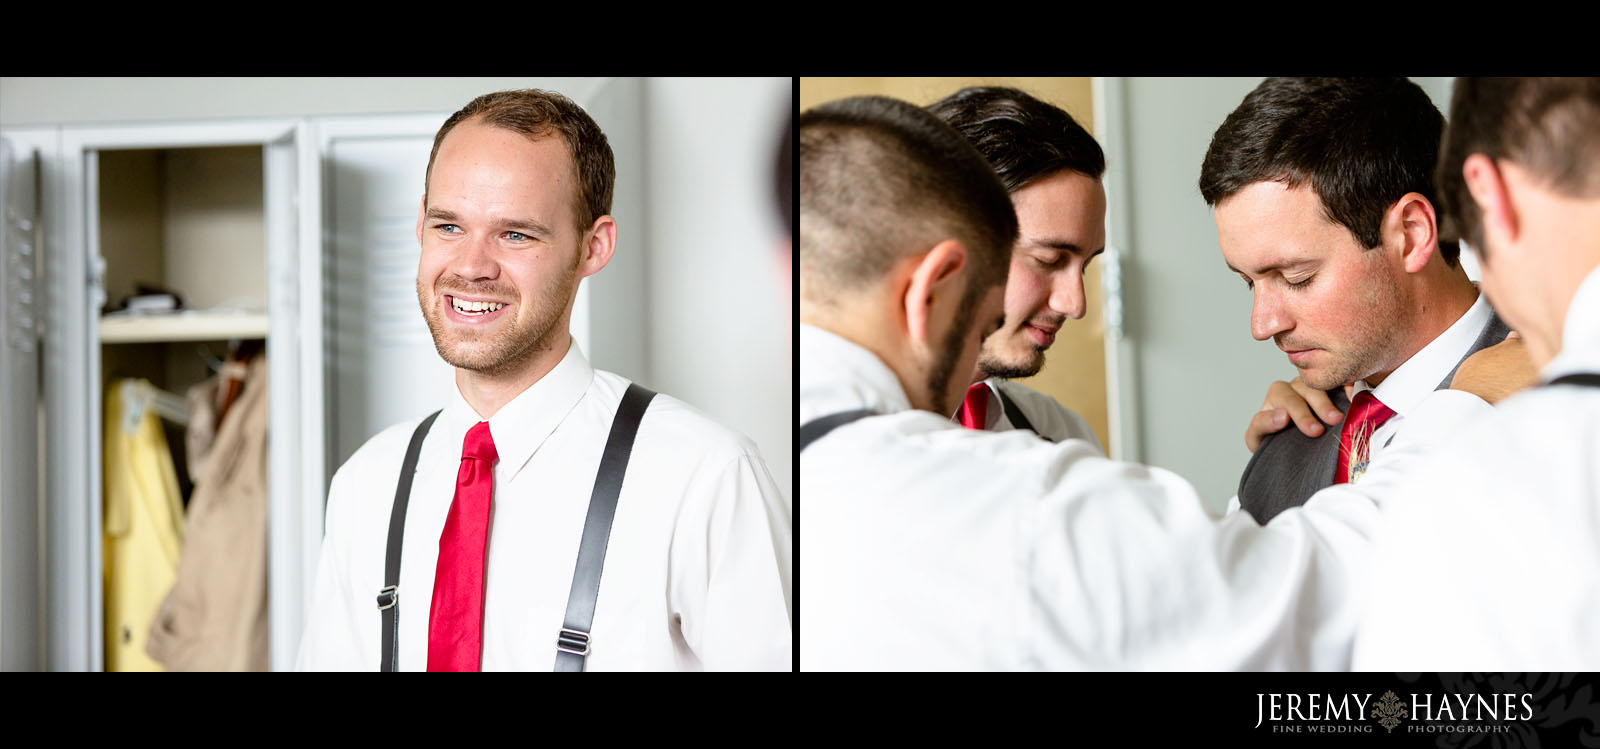 wedding-preparation-the-commons-columbus-wedding-photographer-jeremy-haynes-photography.jpg